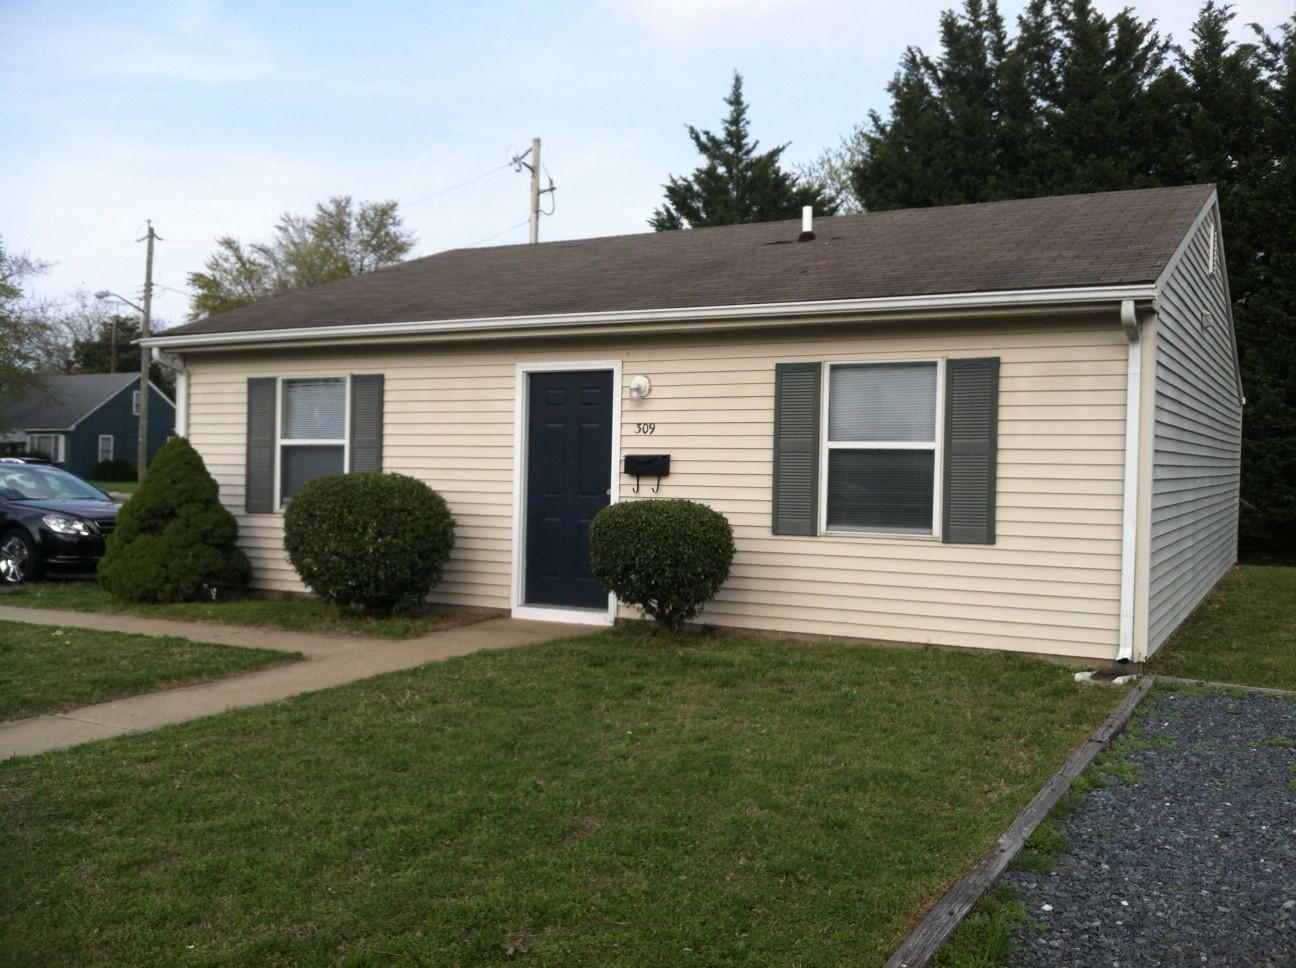 301 Nice Pl Salisbury Md 21804 3 Bedroom House For Rent For 830 Month Zumper